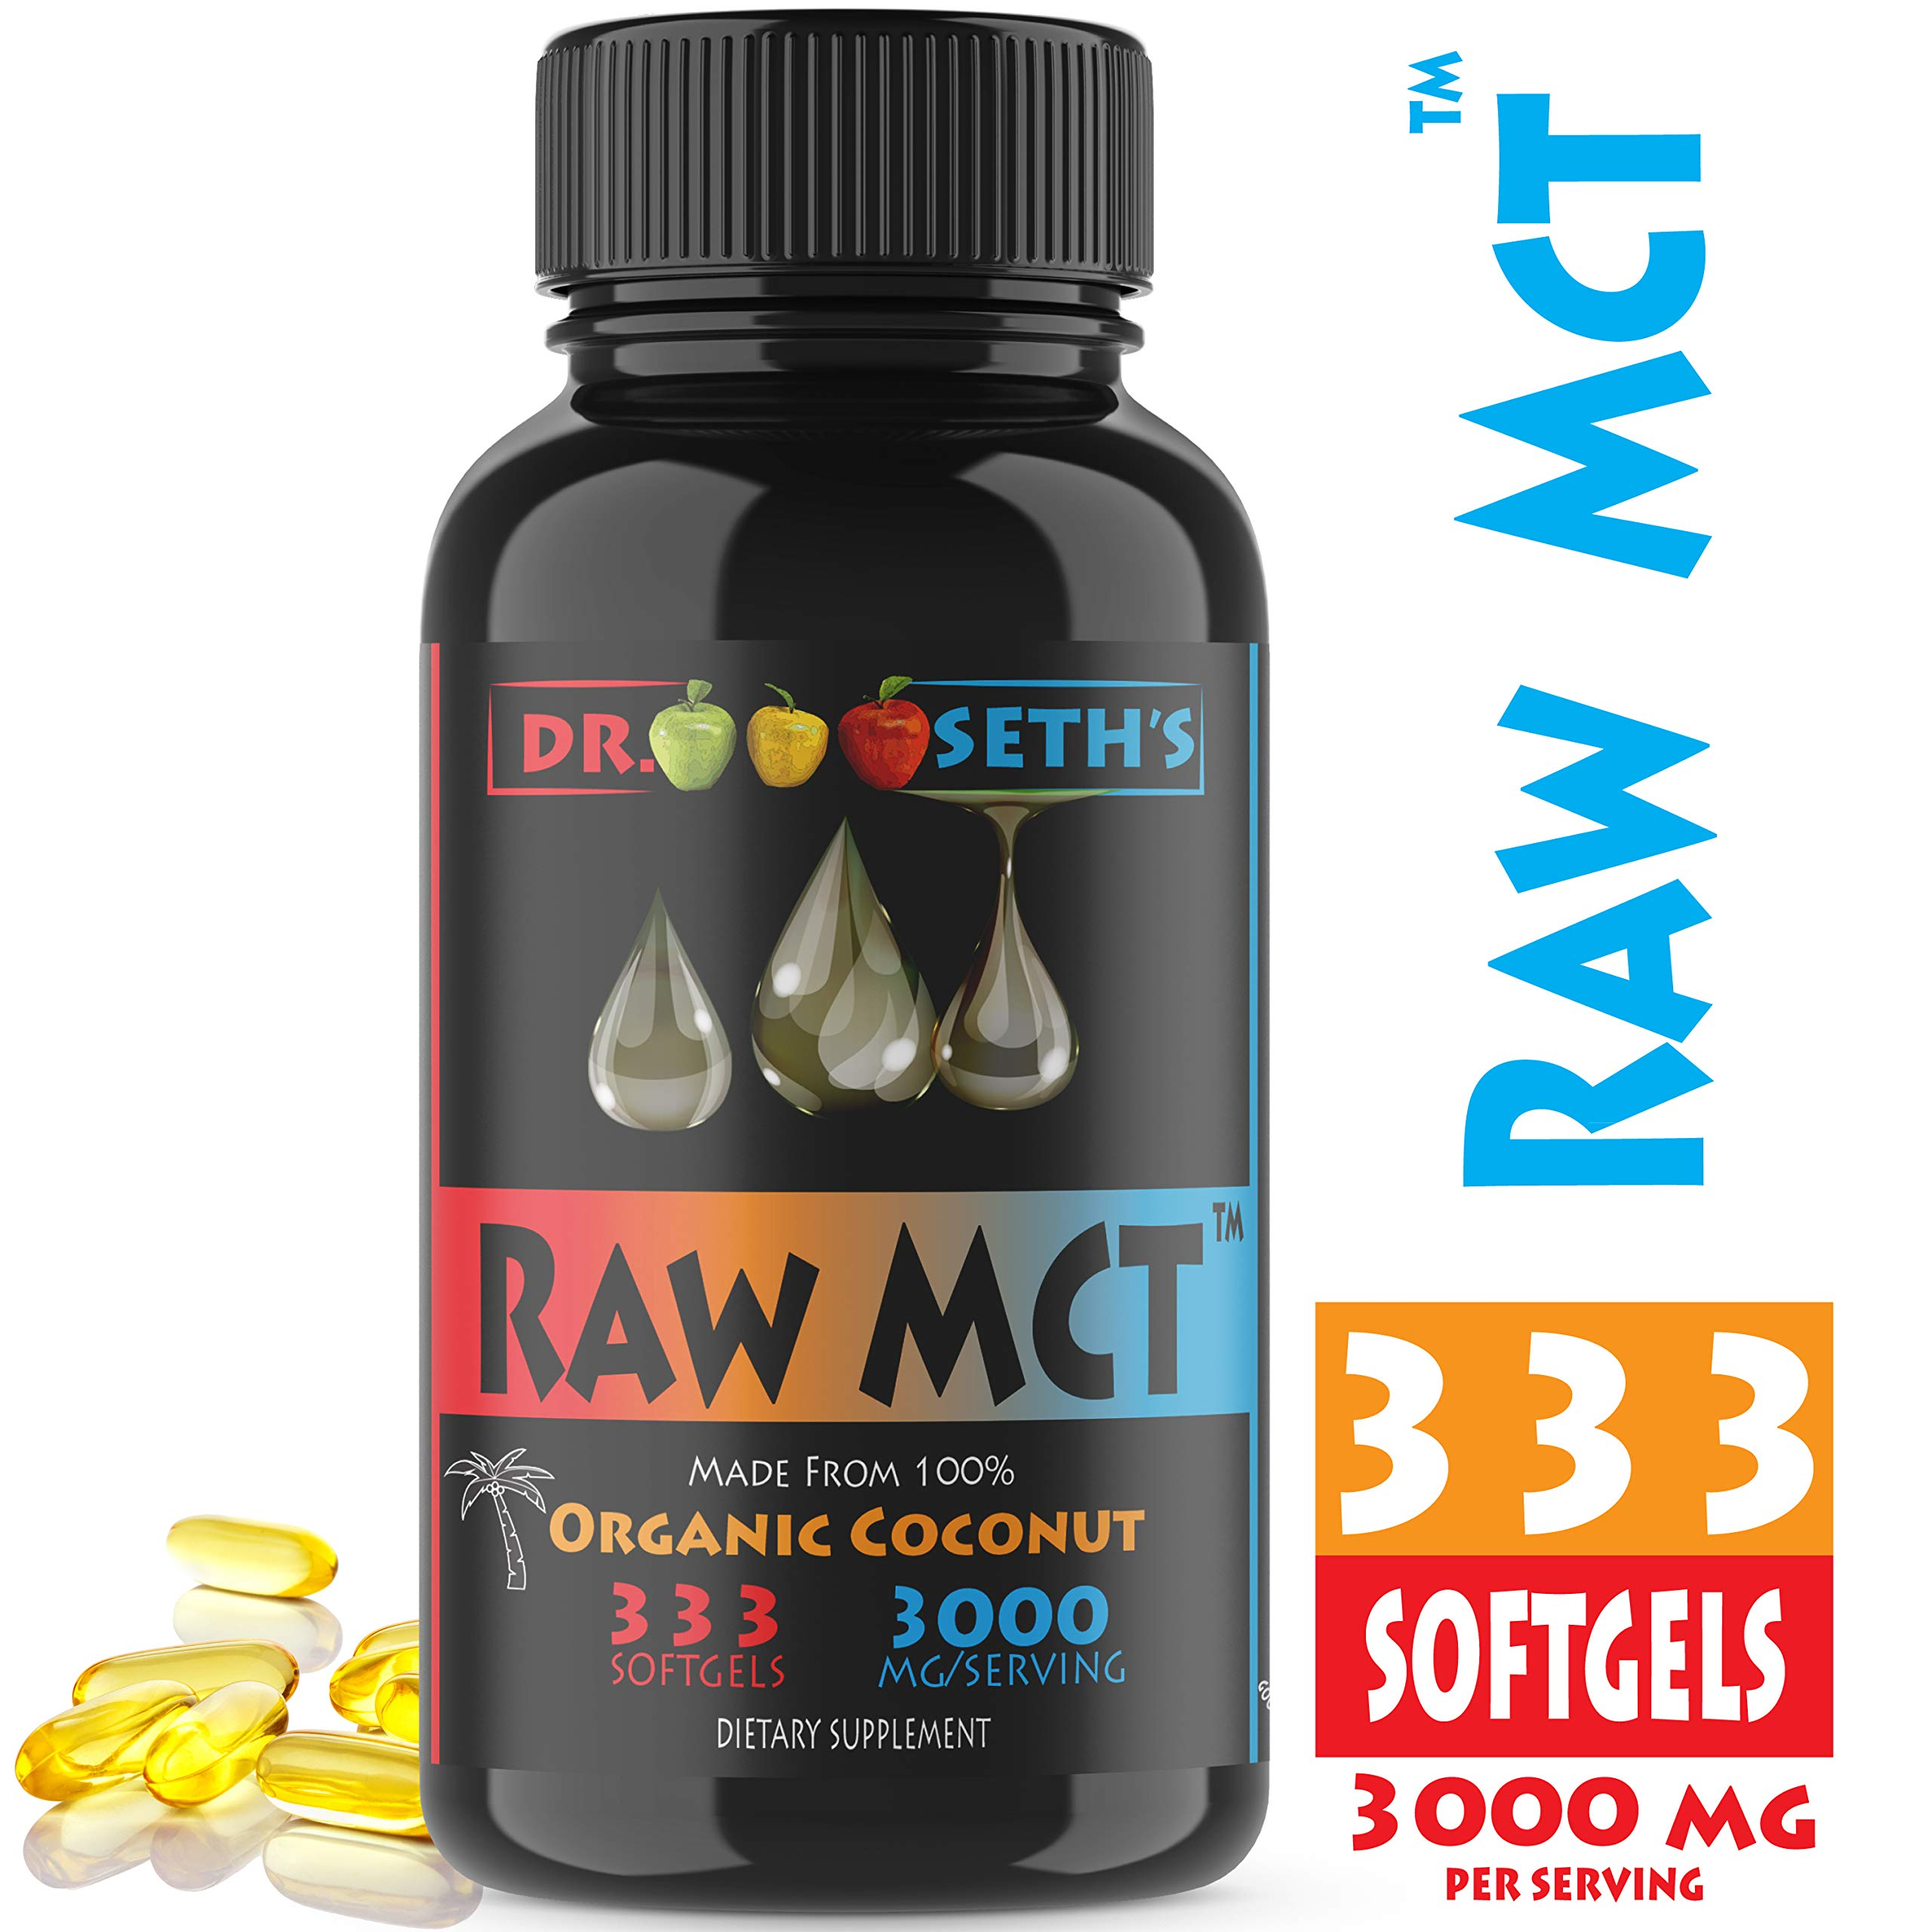 Premium MCT Oil Capsules, 333 Count, derived from 100% Organic Non-GMO Coconuts - 3000 mg Premium MCT Oil ~ Great in Keto Coffee, Tea, MCT Oil Organic ~ Keto MCT Oil -C8 MCT Oil